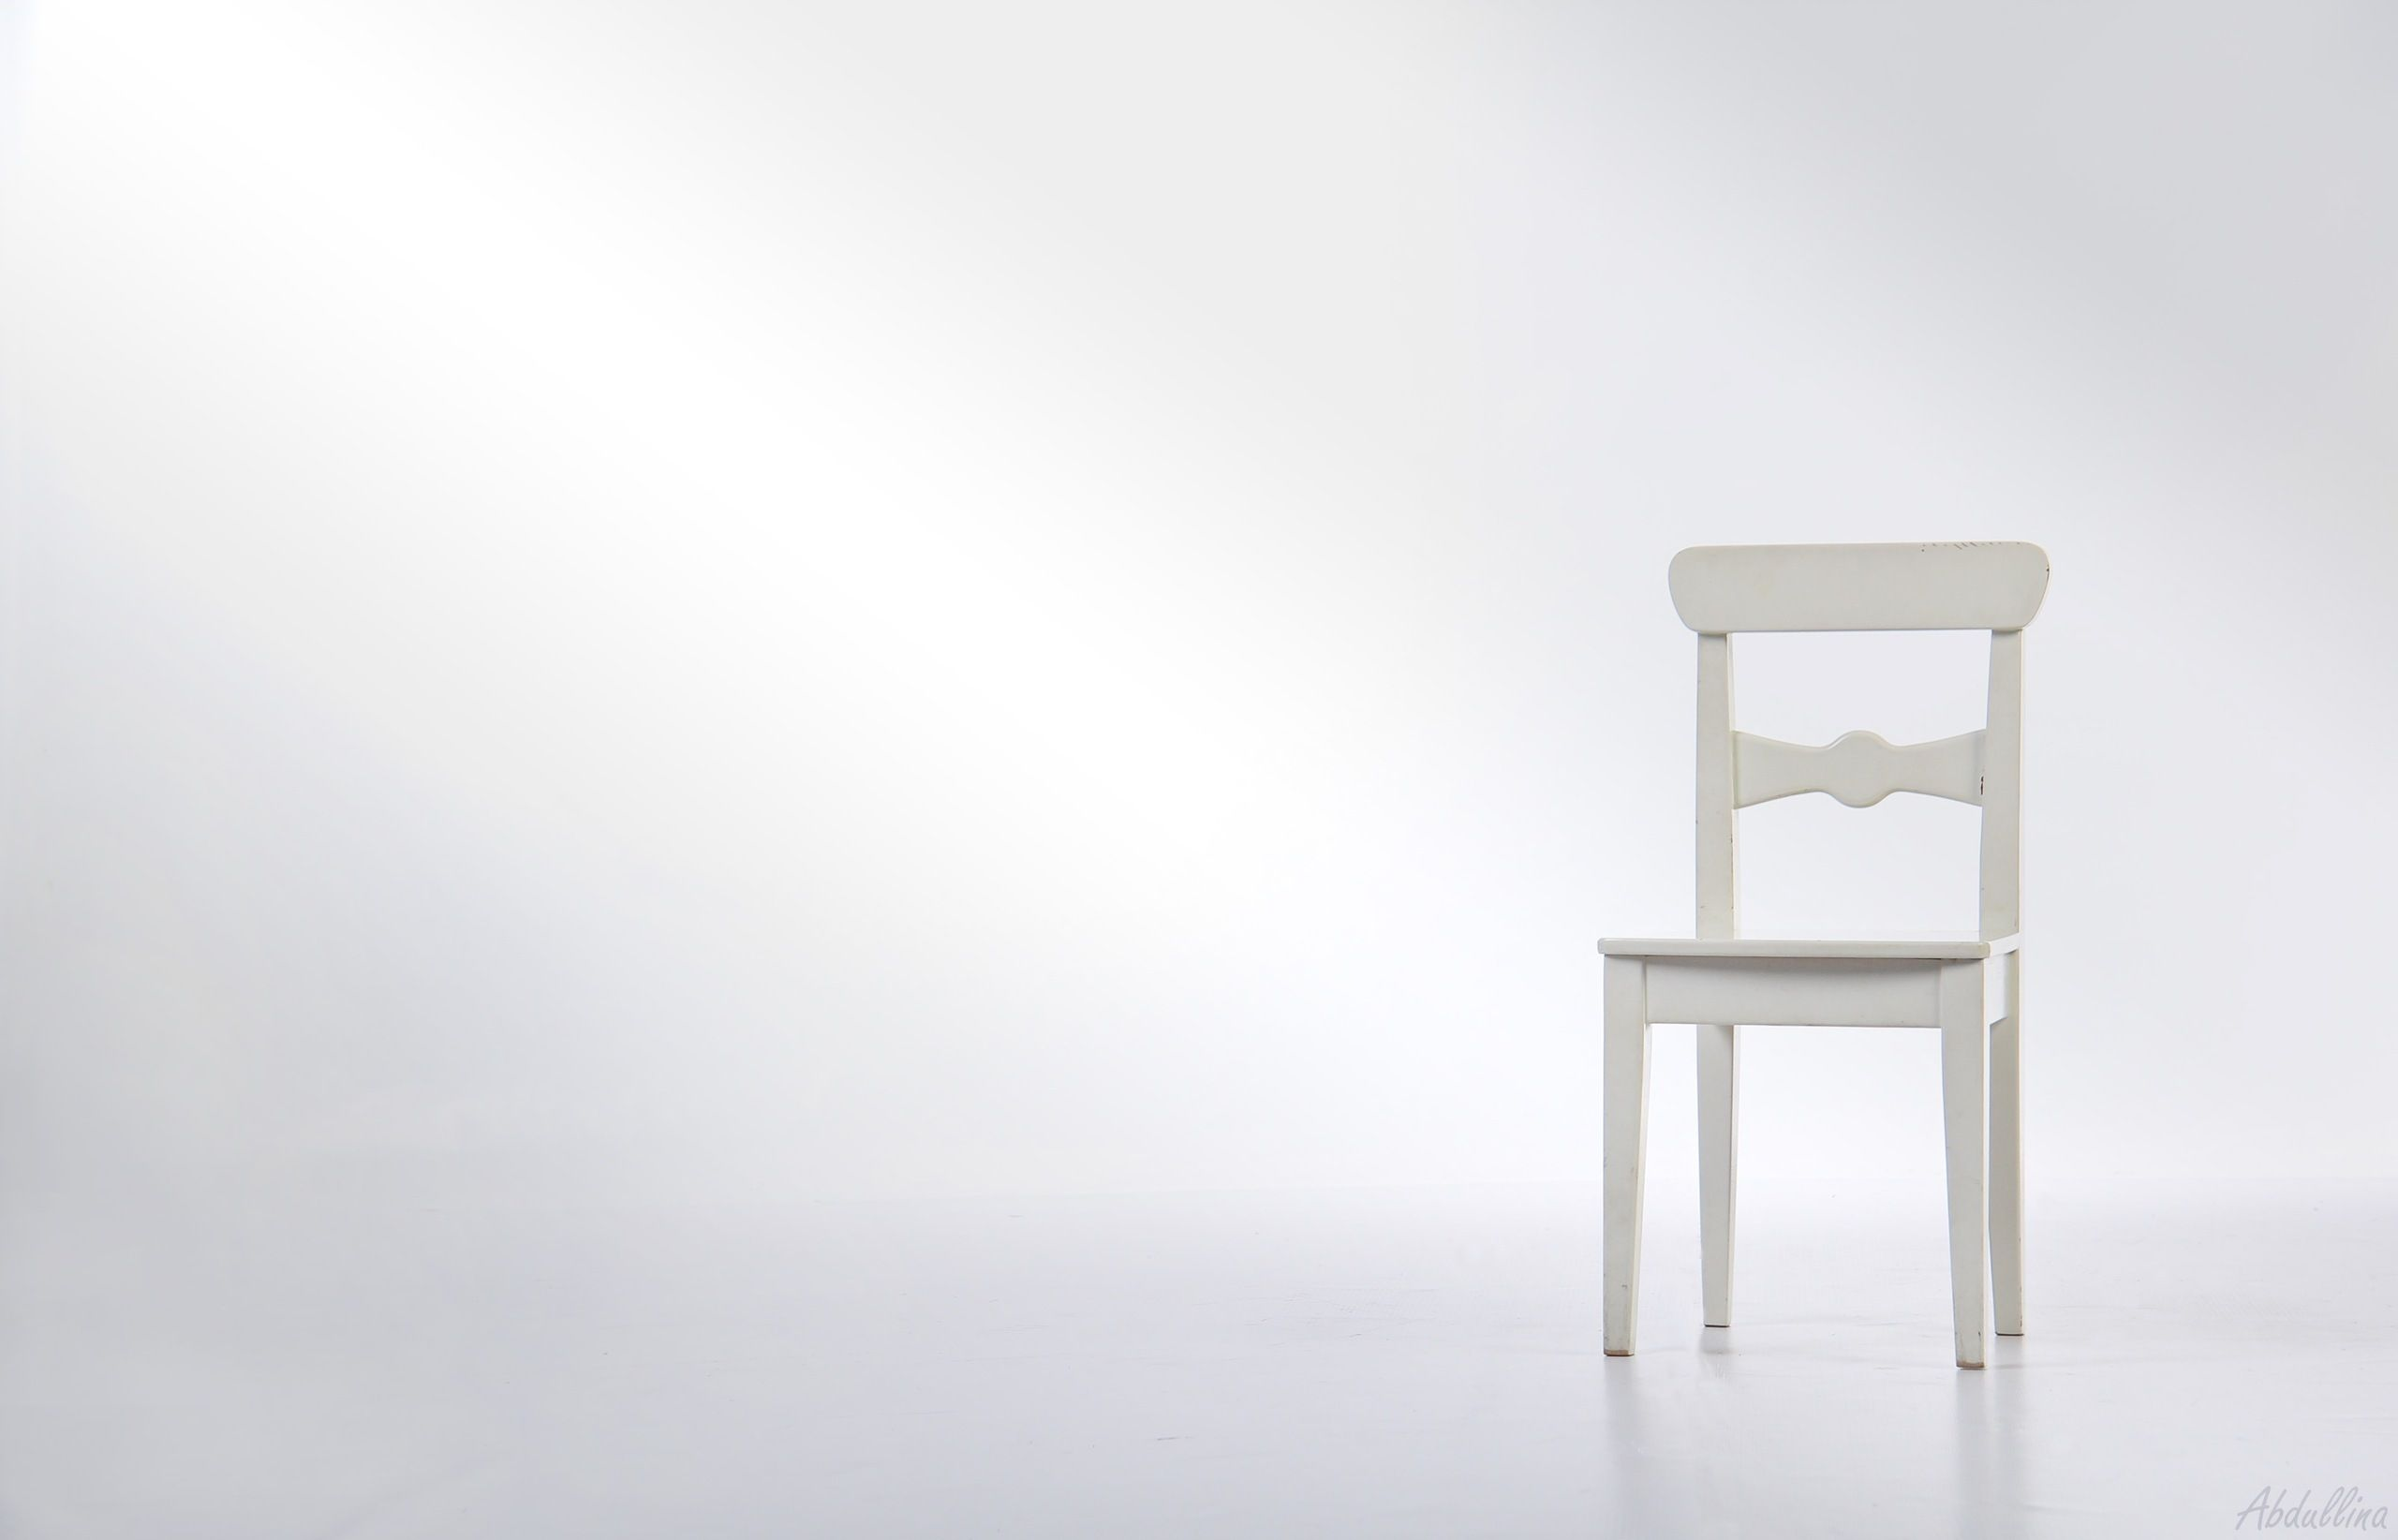 chair design wallpaper shipping a across country white in room misc stuff wallpapers hd